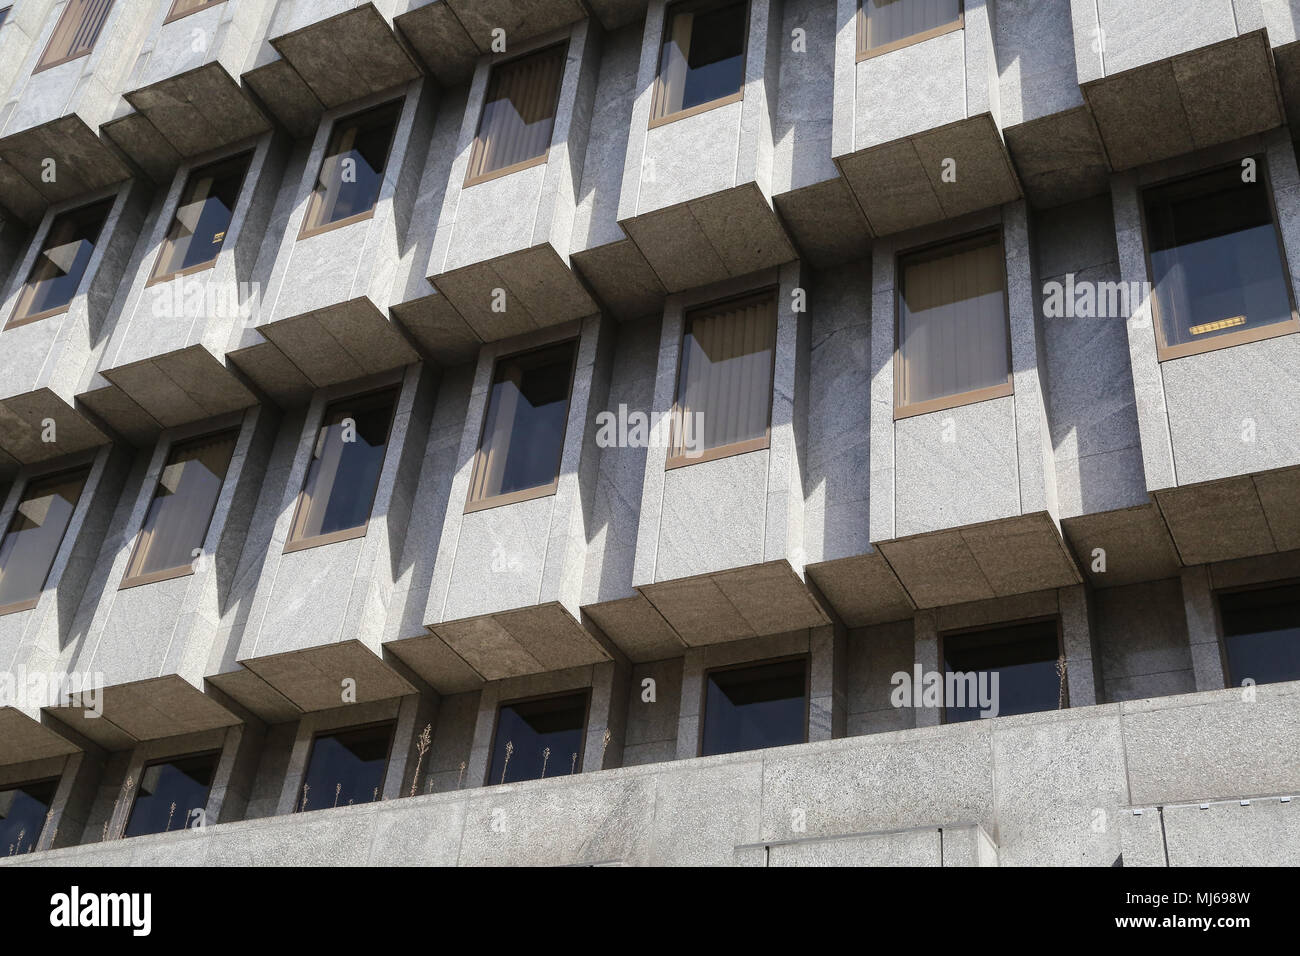 Section of a modern building in Leeds City Centre West Yorkshire. The architect designed a repeating pattern of glass and concrete of​ geometric lines - Stock Image